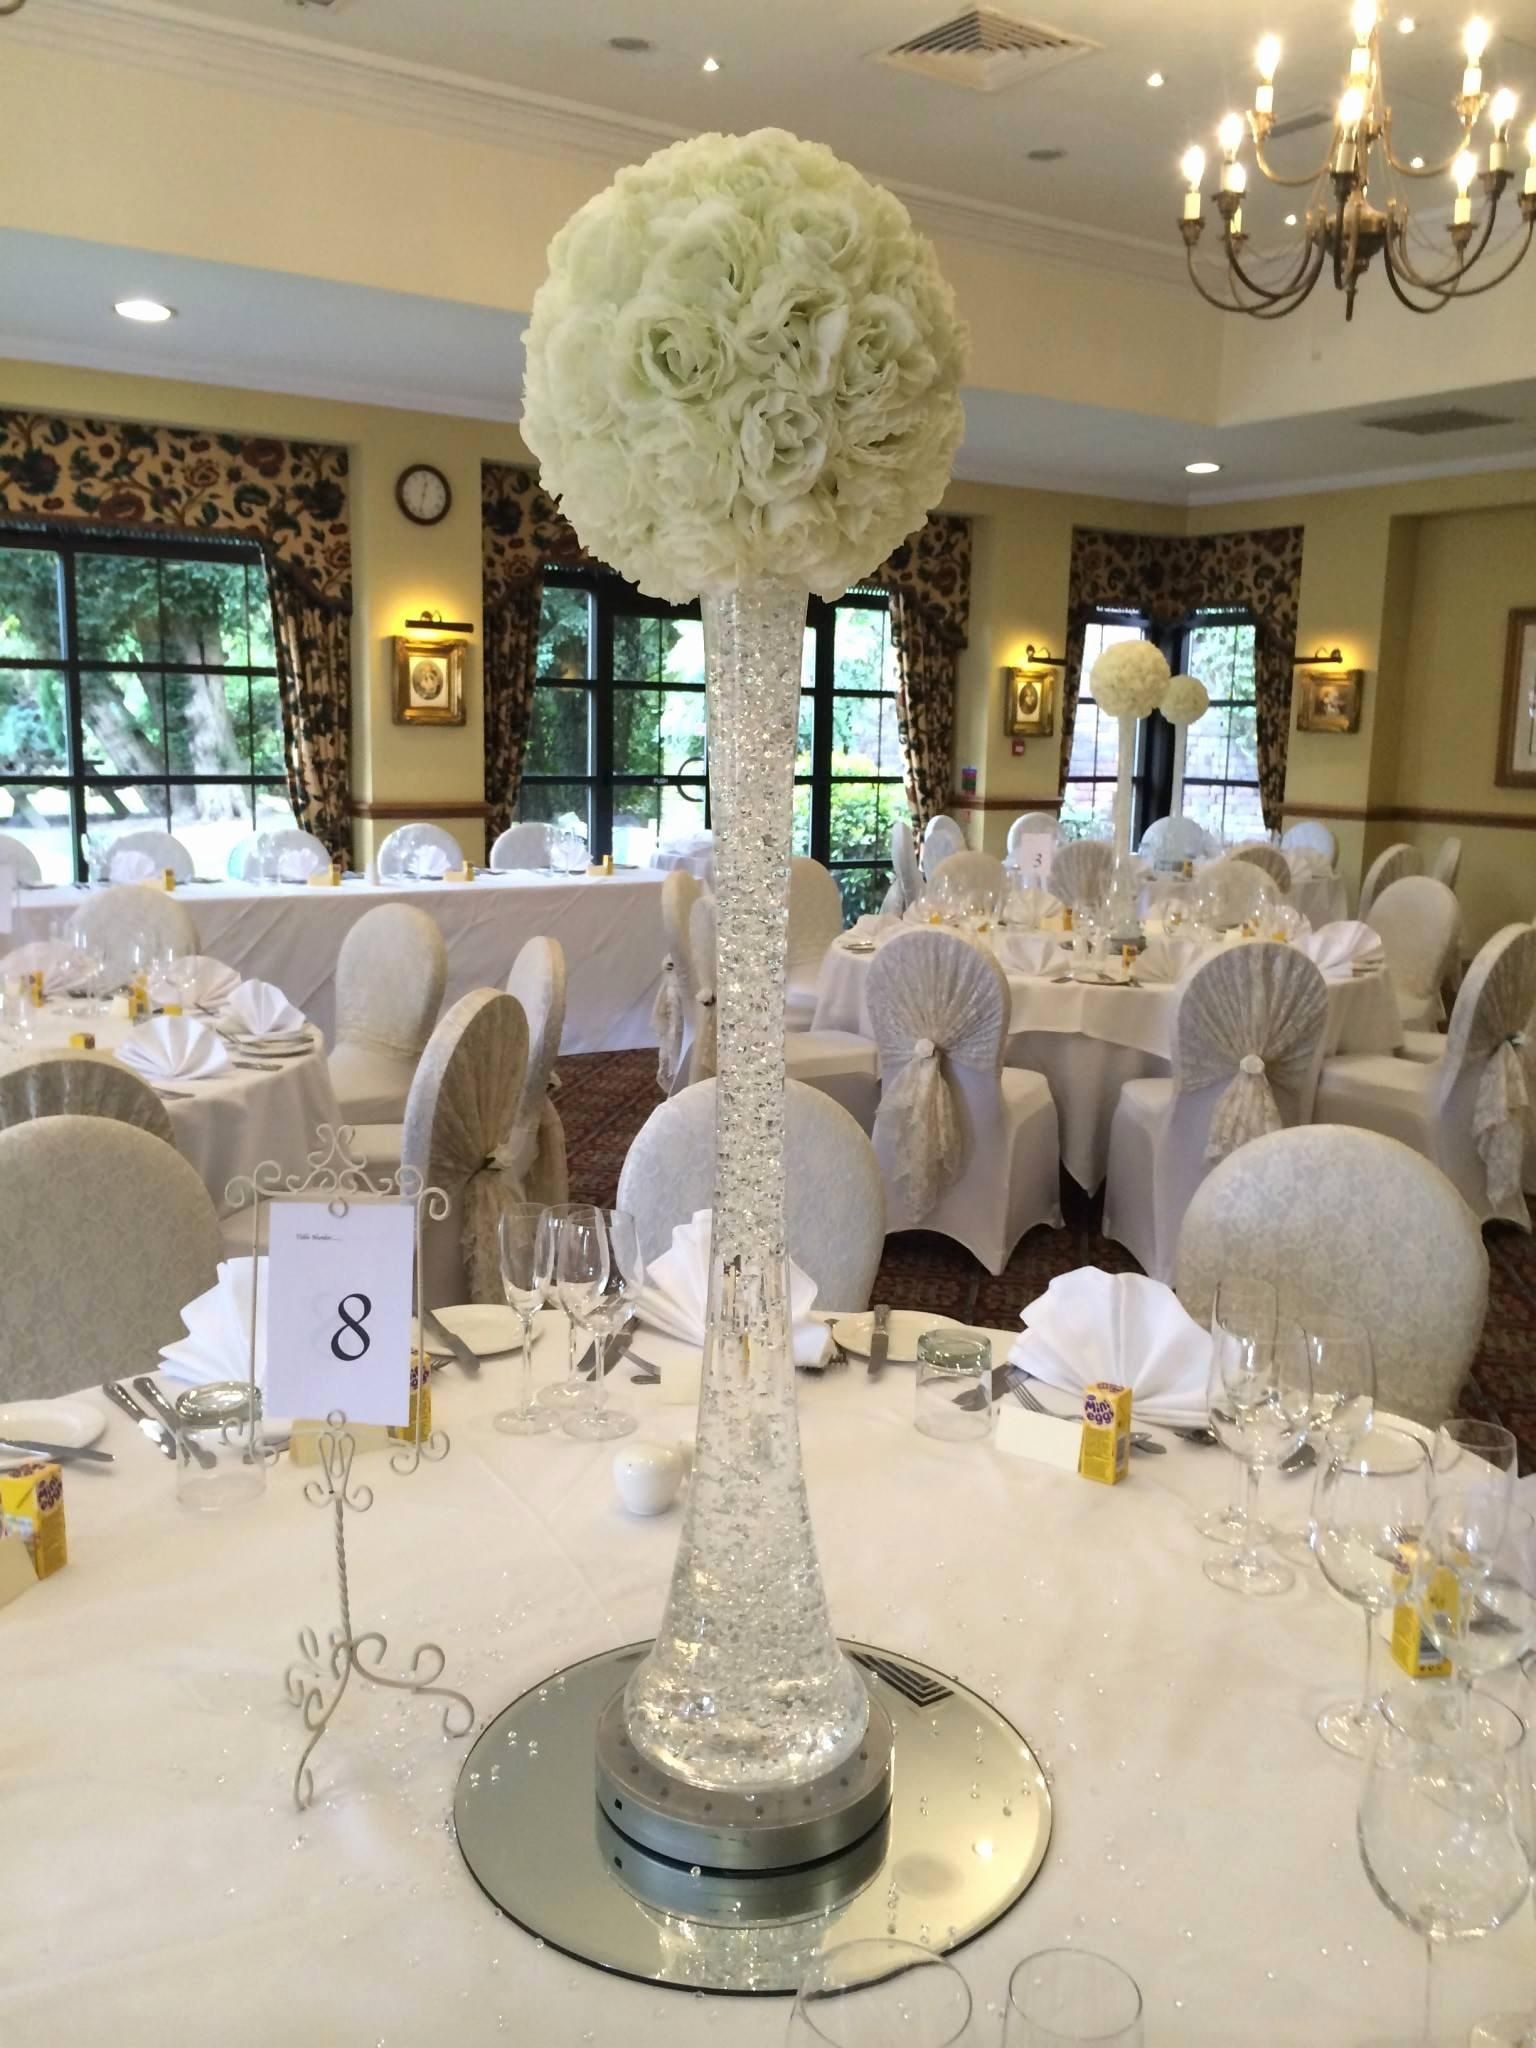 wedding table flower vases of 47 vase centerpiece ideas the weekly world for tall vase centerpiece ideas vases flowers in water 0d artificial